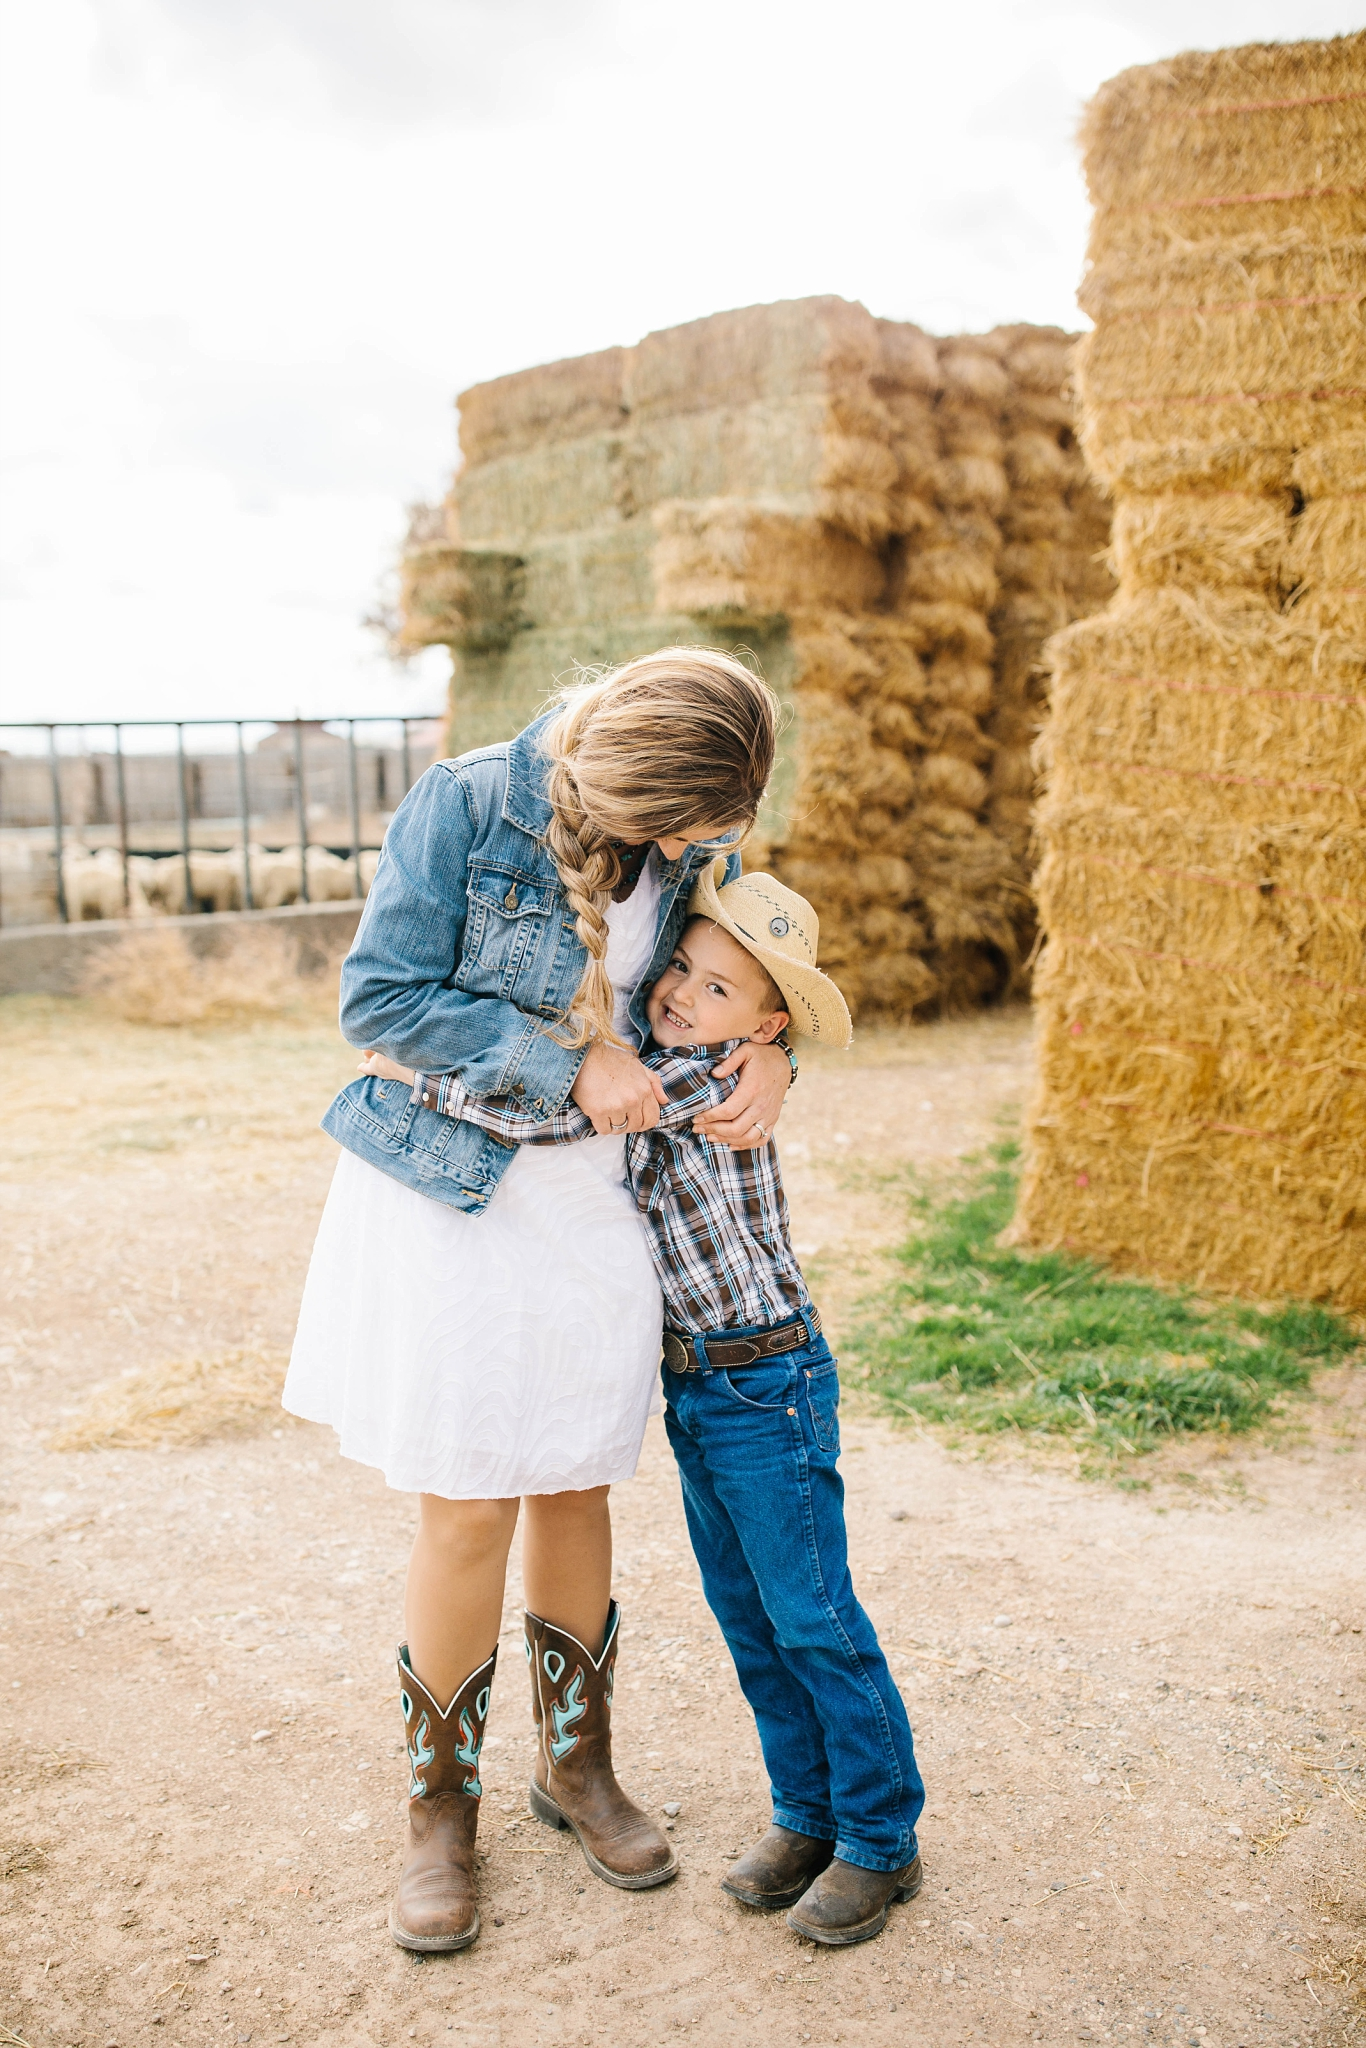 Lister-45_Lizzie-B-Imagery-Utah-Family-Photographer-Lifestyle-Photography-Salt-Lake-City-Park-City-Utah-County-Farm-Family-Session.jpg